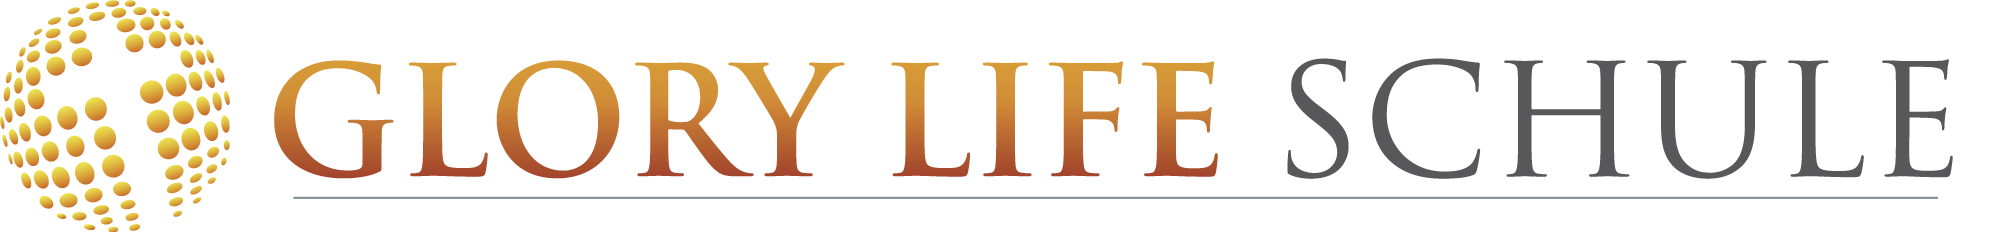 Glory-Life-Logo_Schule-1.png